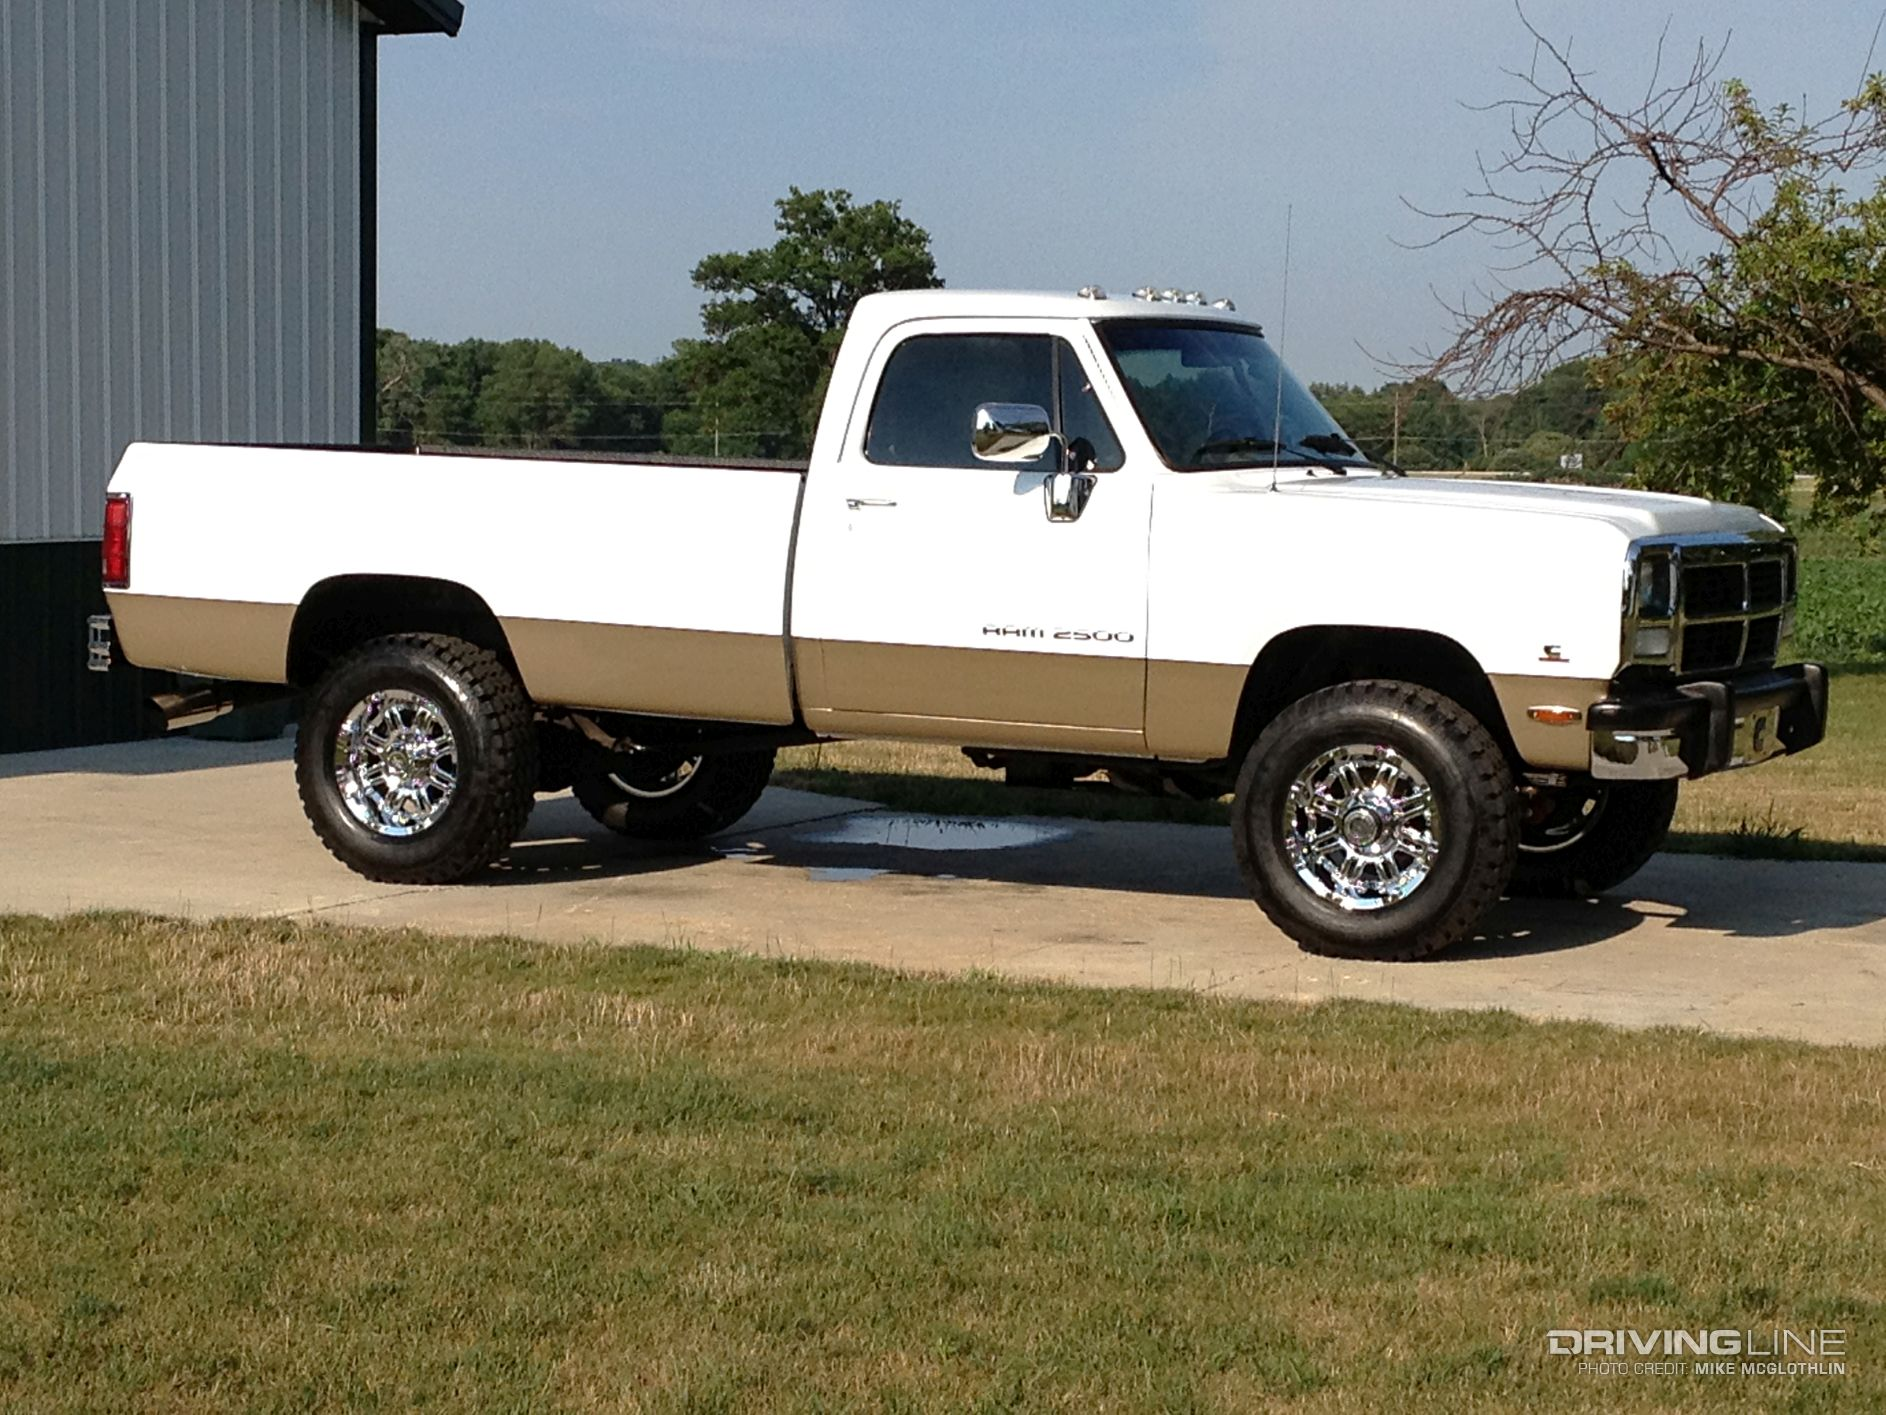 Vintage Truck Bed >> Diesel Ram Buyer's Guide: The Cummins Catalogue | DrivingLine